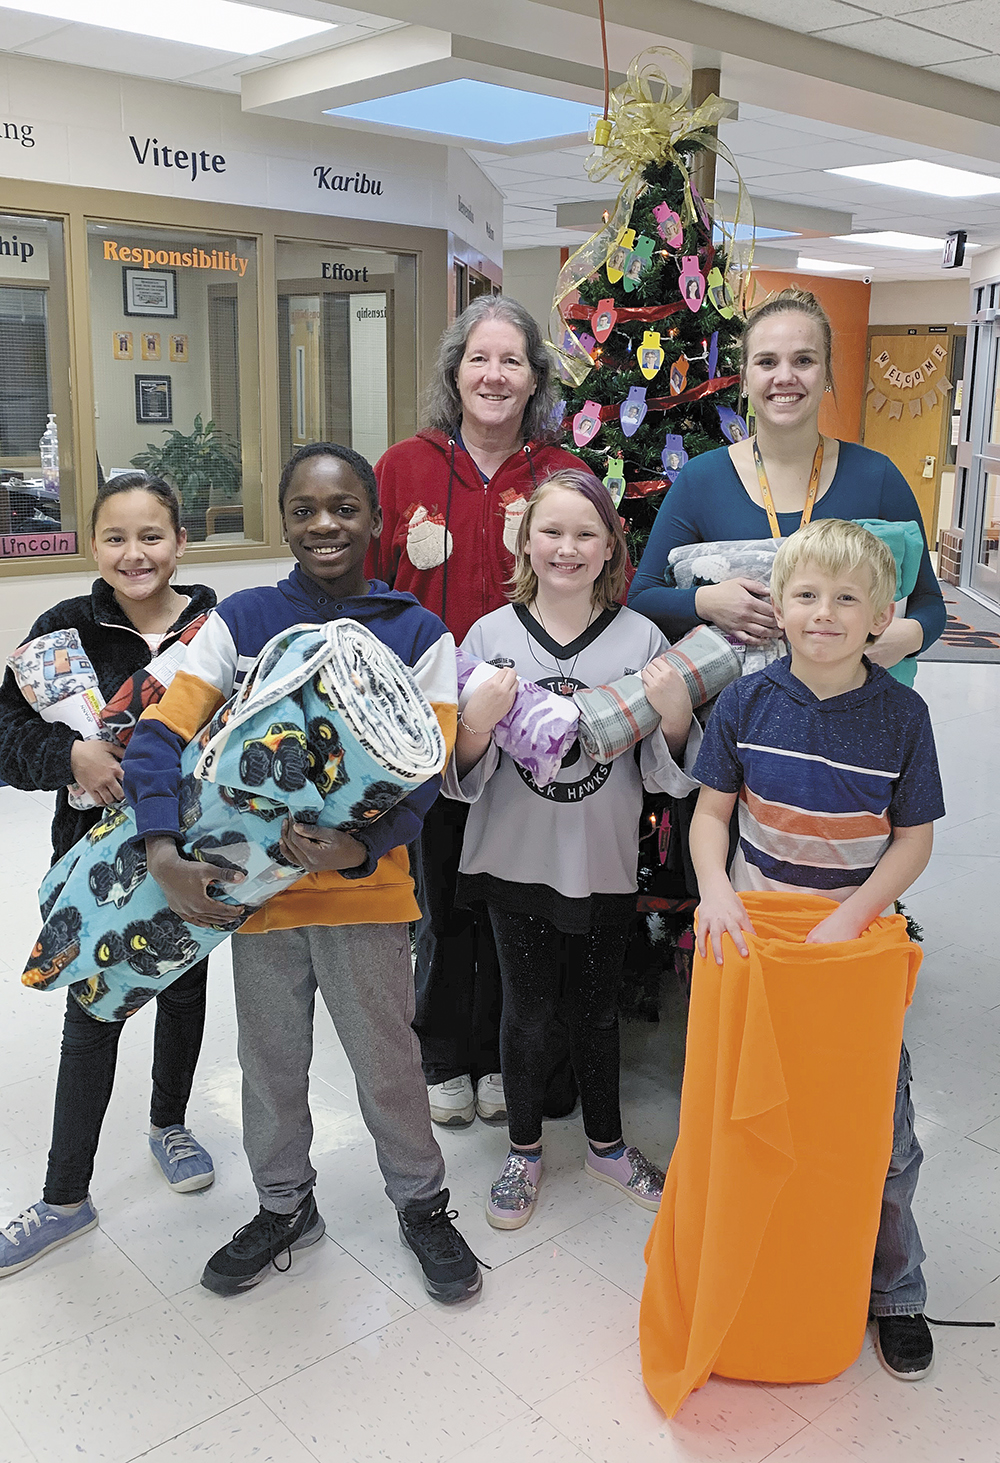 Elementary students make fleece blankets, donate them to the police